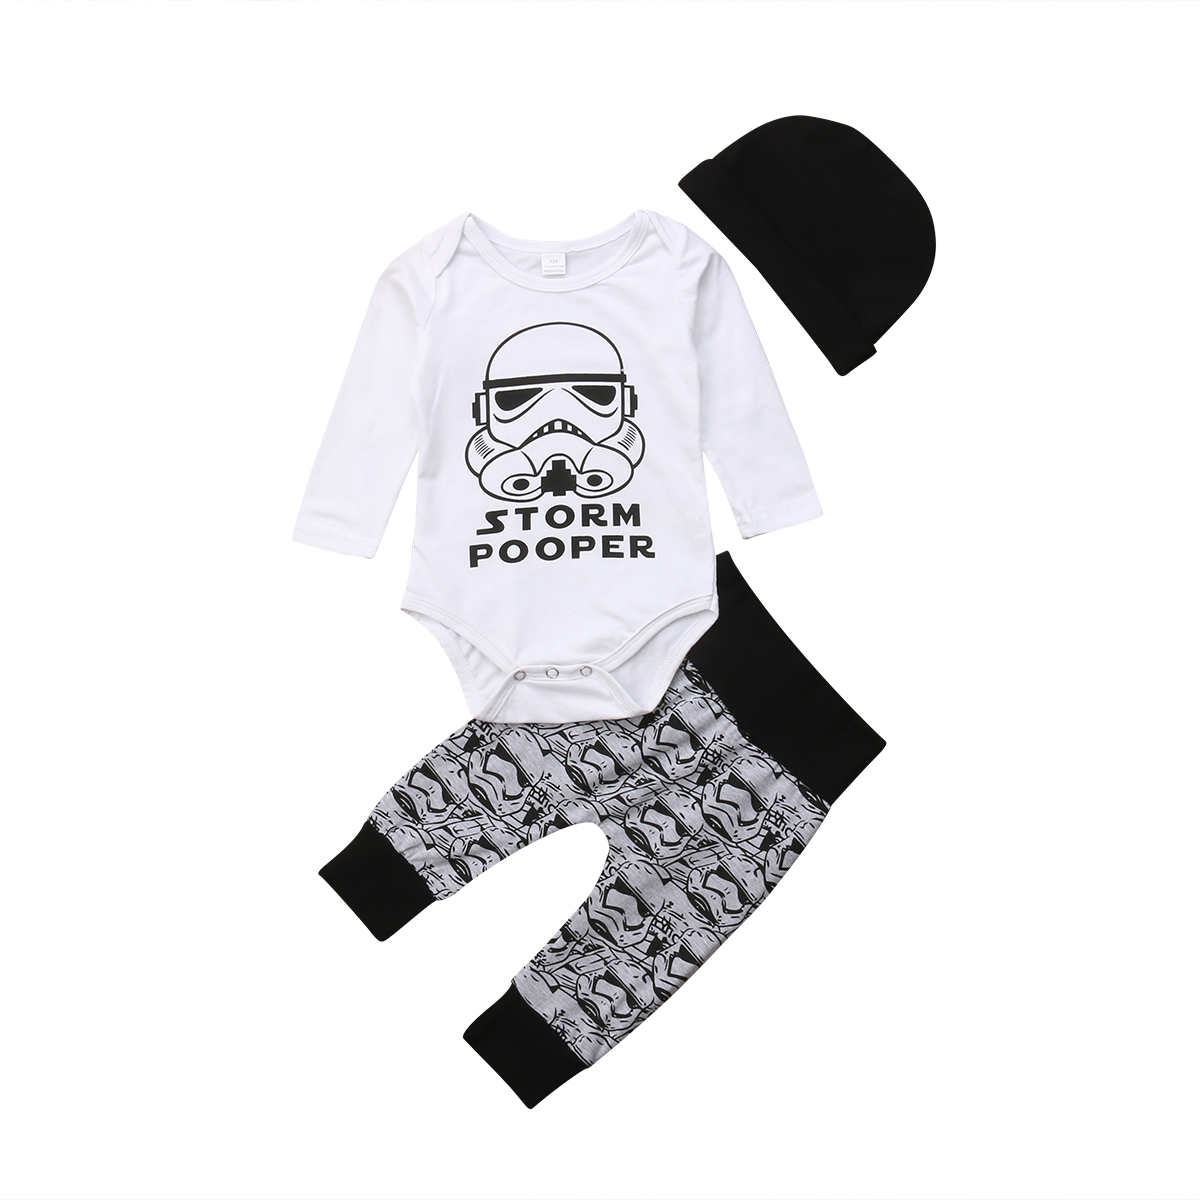 0-18M Newborn Infant Baby Boy Girl Long Sleeve Cotton Romper Tops+Long Pant Hat 3PCS Outfits Cartoon Baby Clothes Set